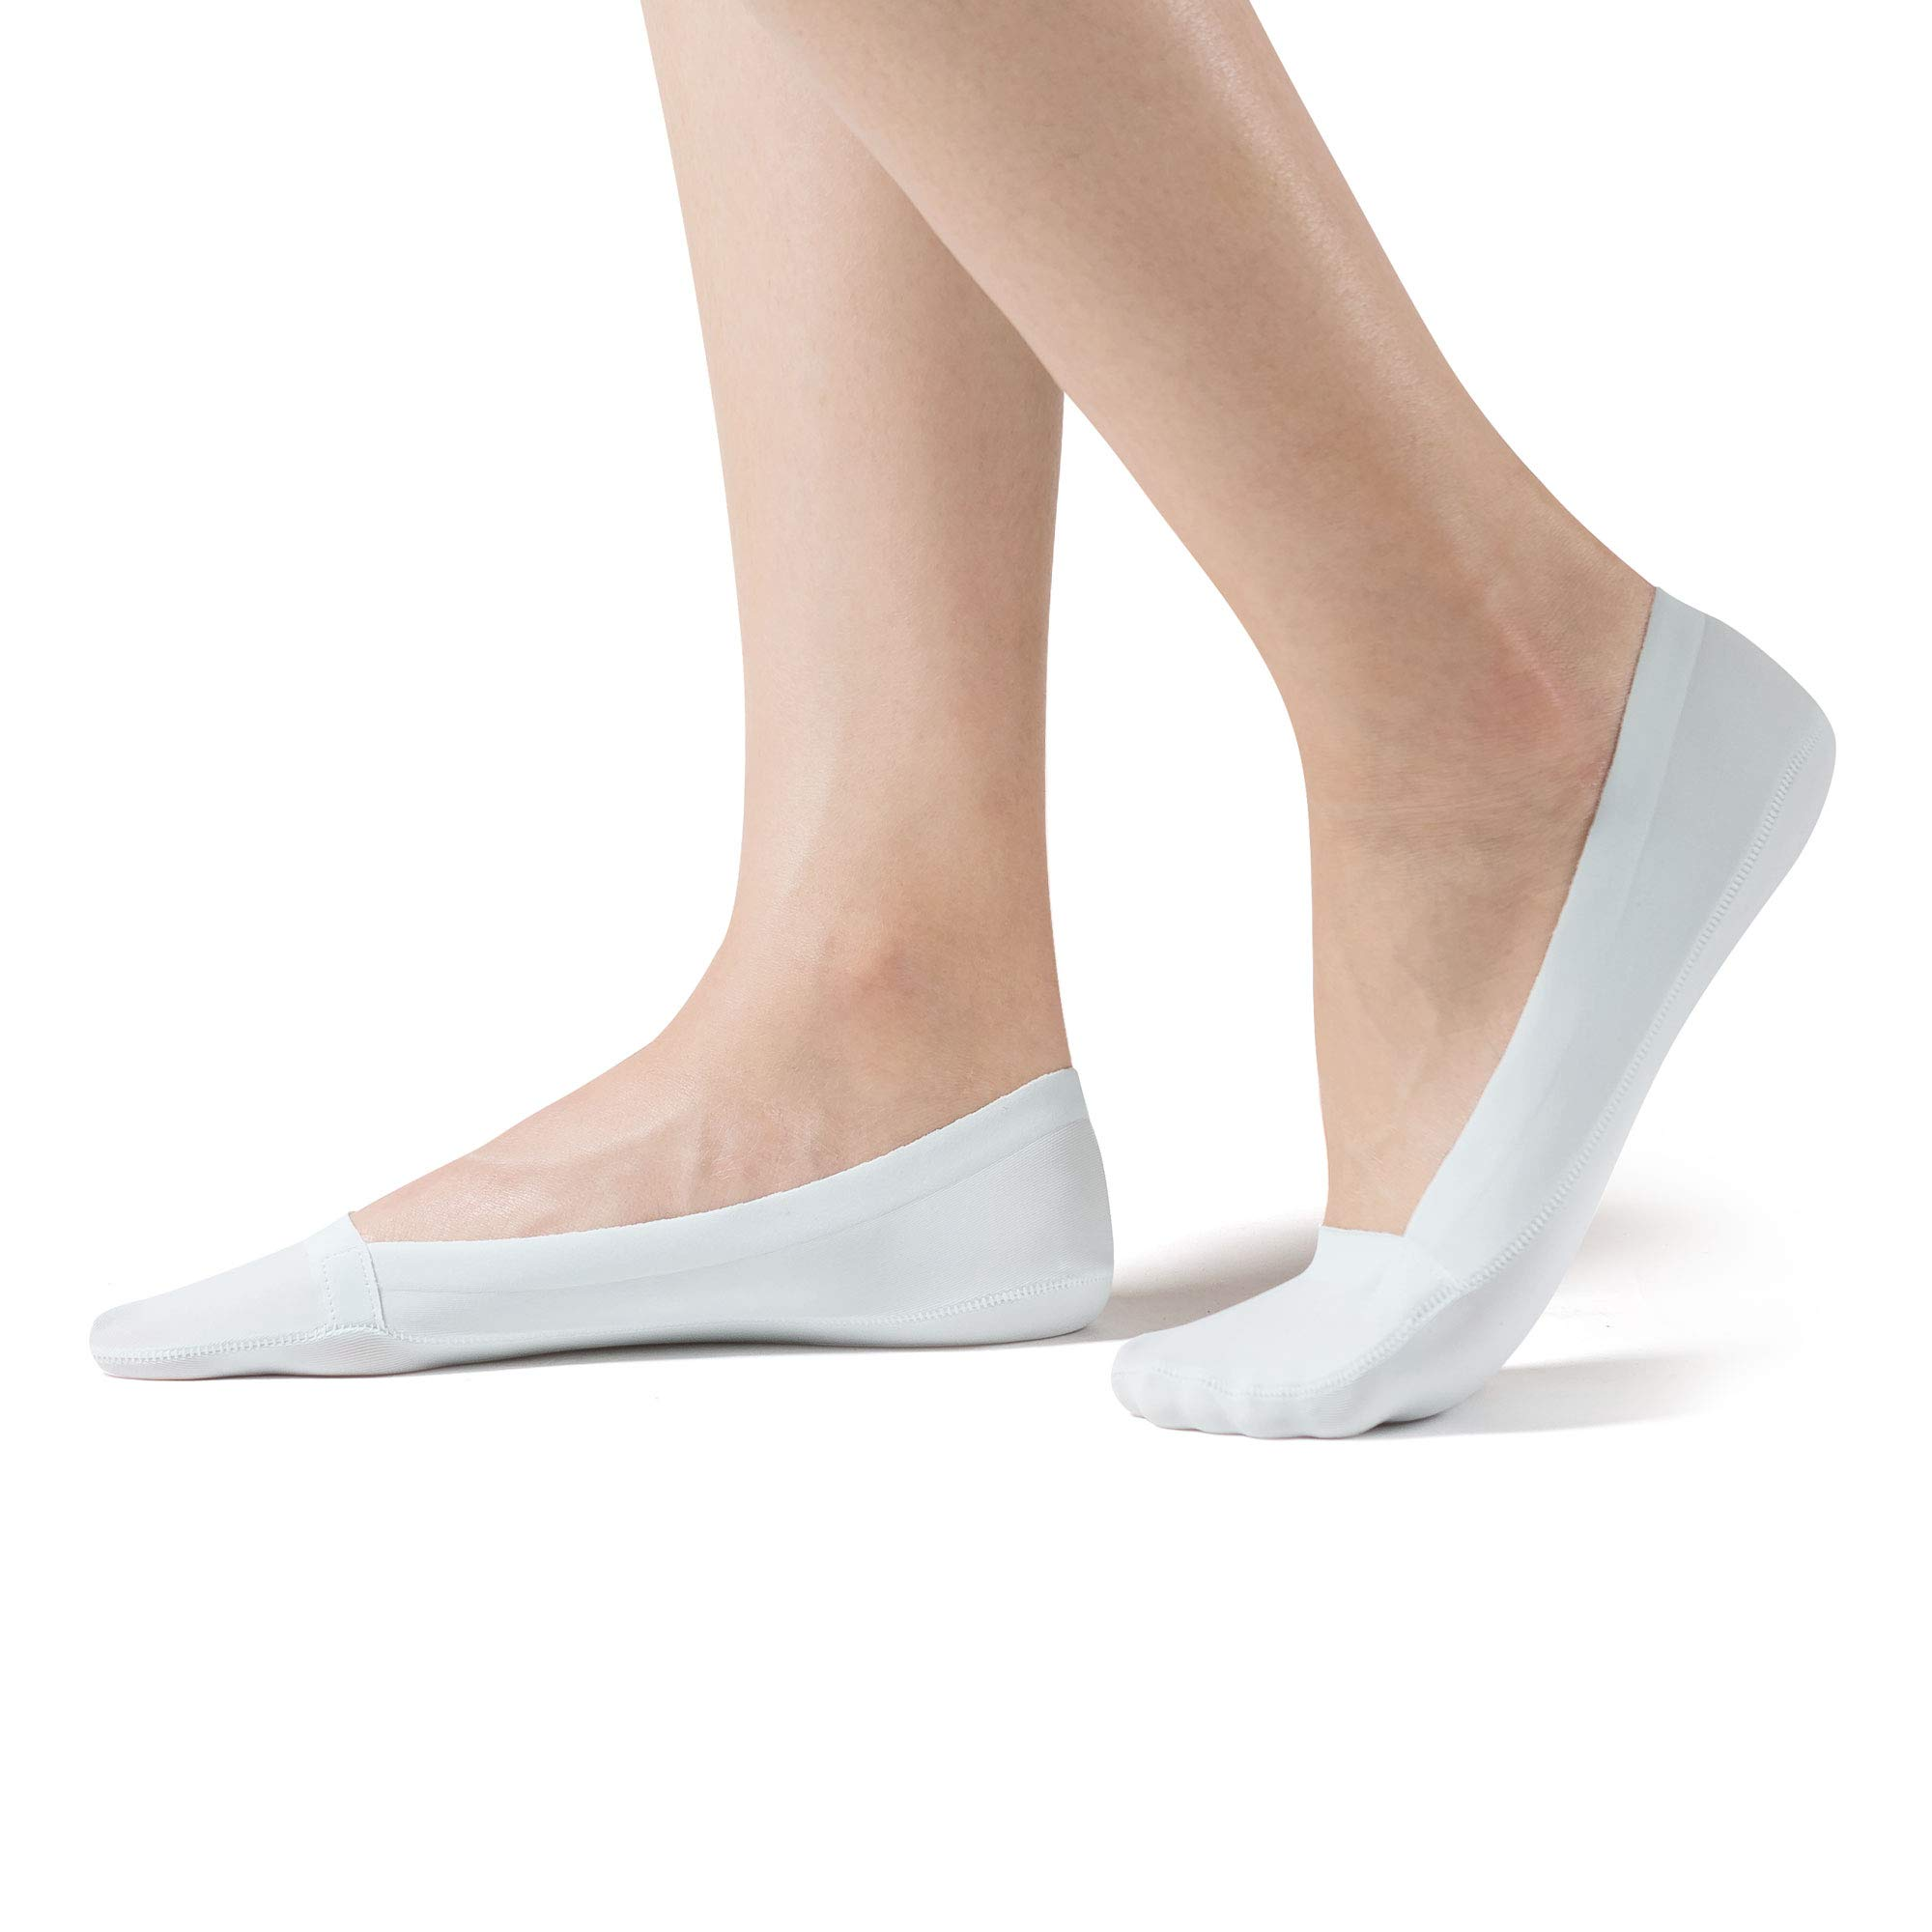 SHEEC SoleHugger InvisiCool - Women's No-Show Moisture Wicking Breathable Boat Sock - Aqua Small 4 Pair Pack - New Version by Sheec